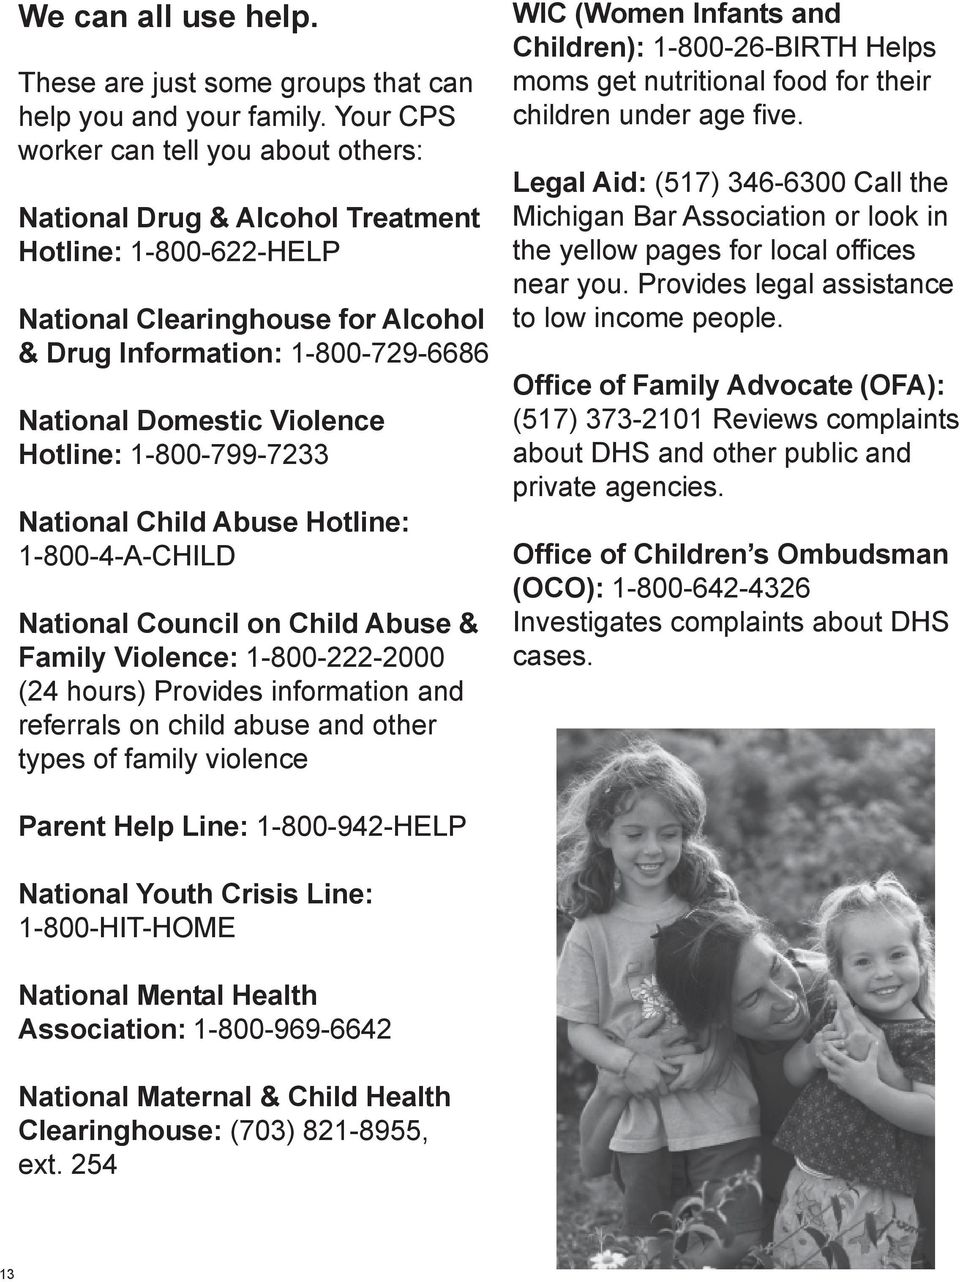 Hotline: 1-800-799-7233 National Child Abuse Hotline: 1-800-4-A-CHILD National Council on Child Abuse & Family Violence: 1-800-222-2000 (24 hours) Provides information and referrals on child abuse